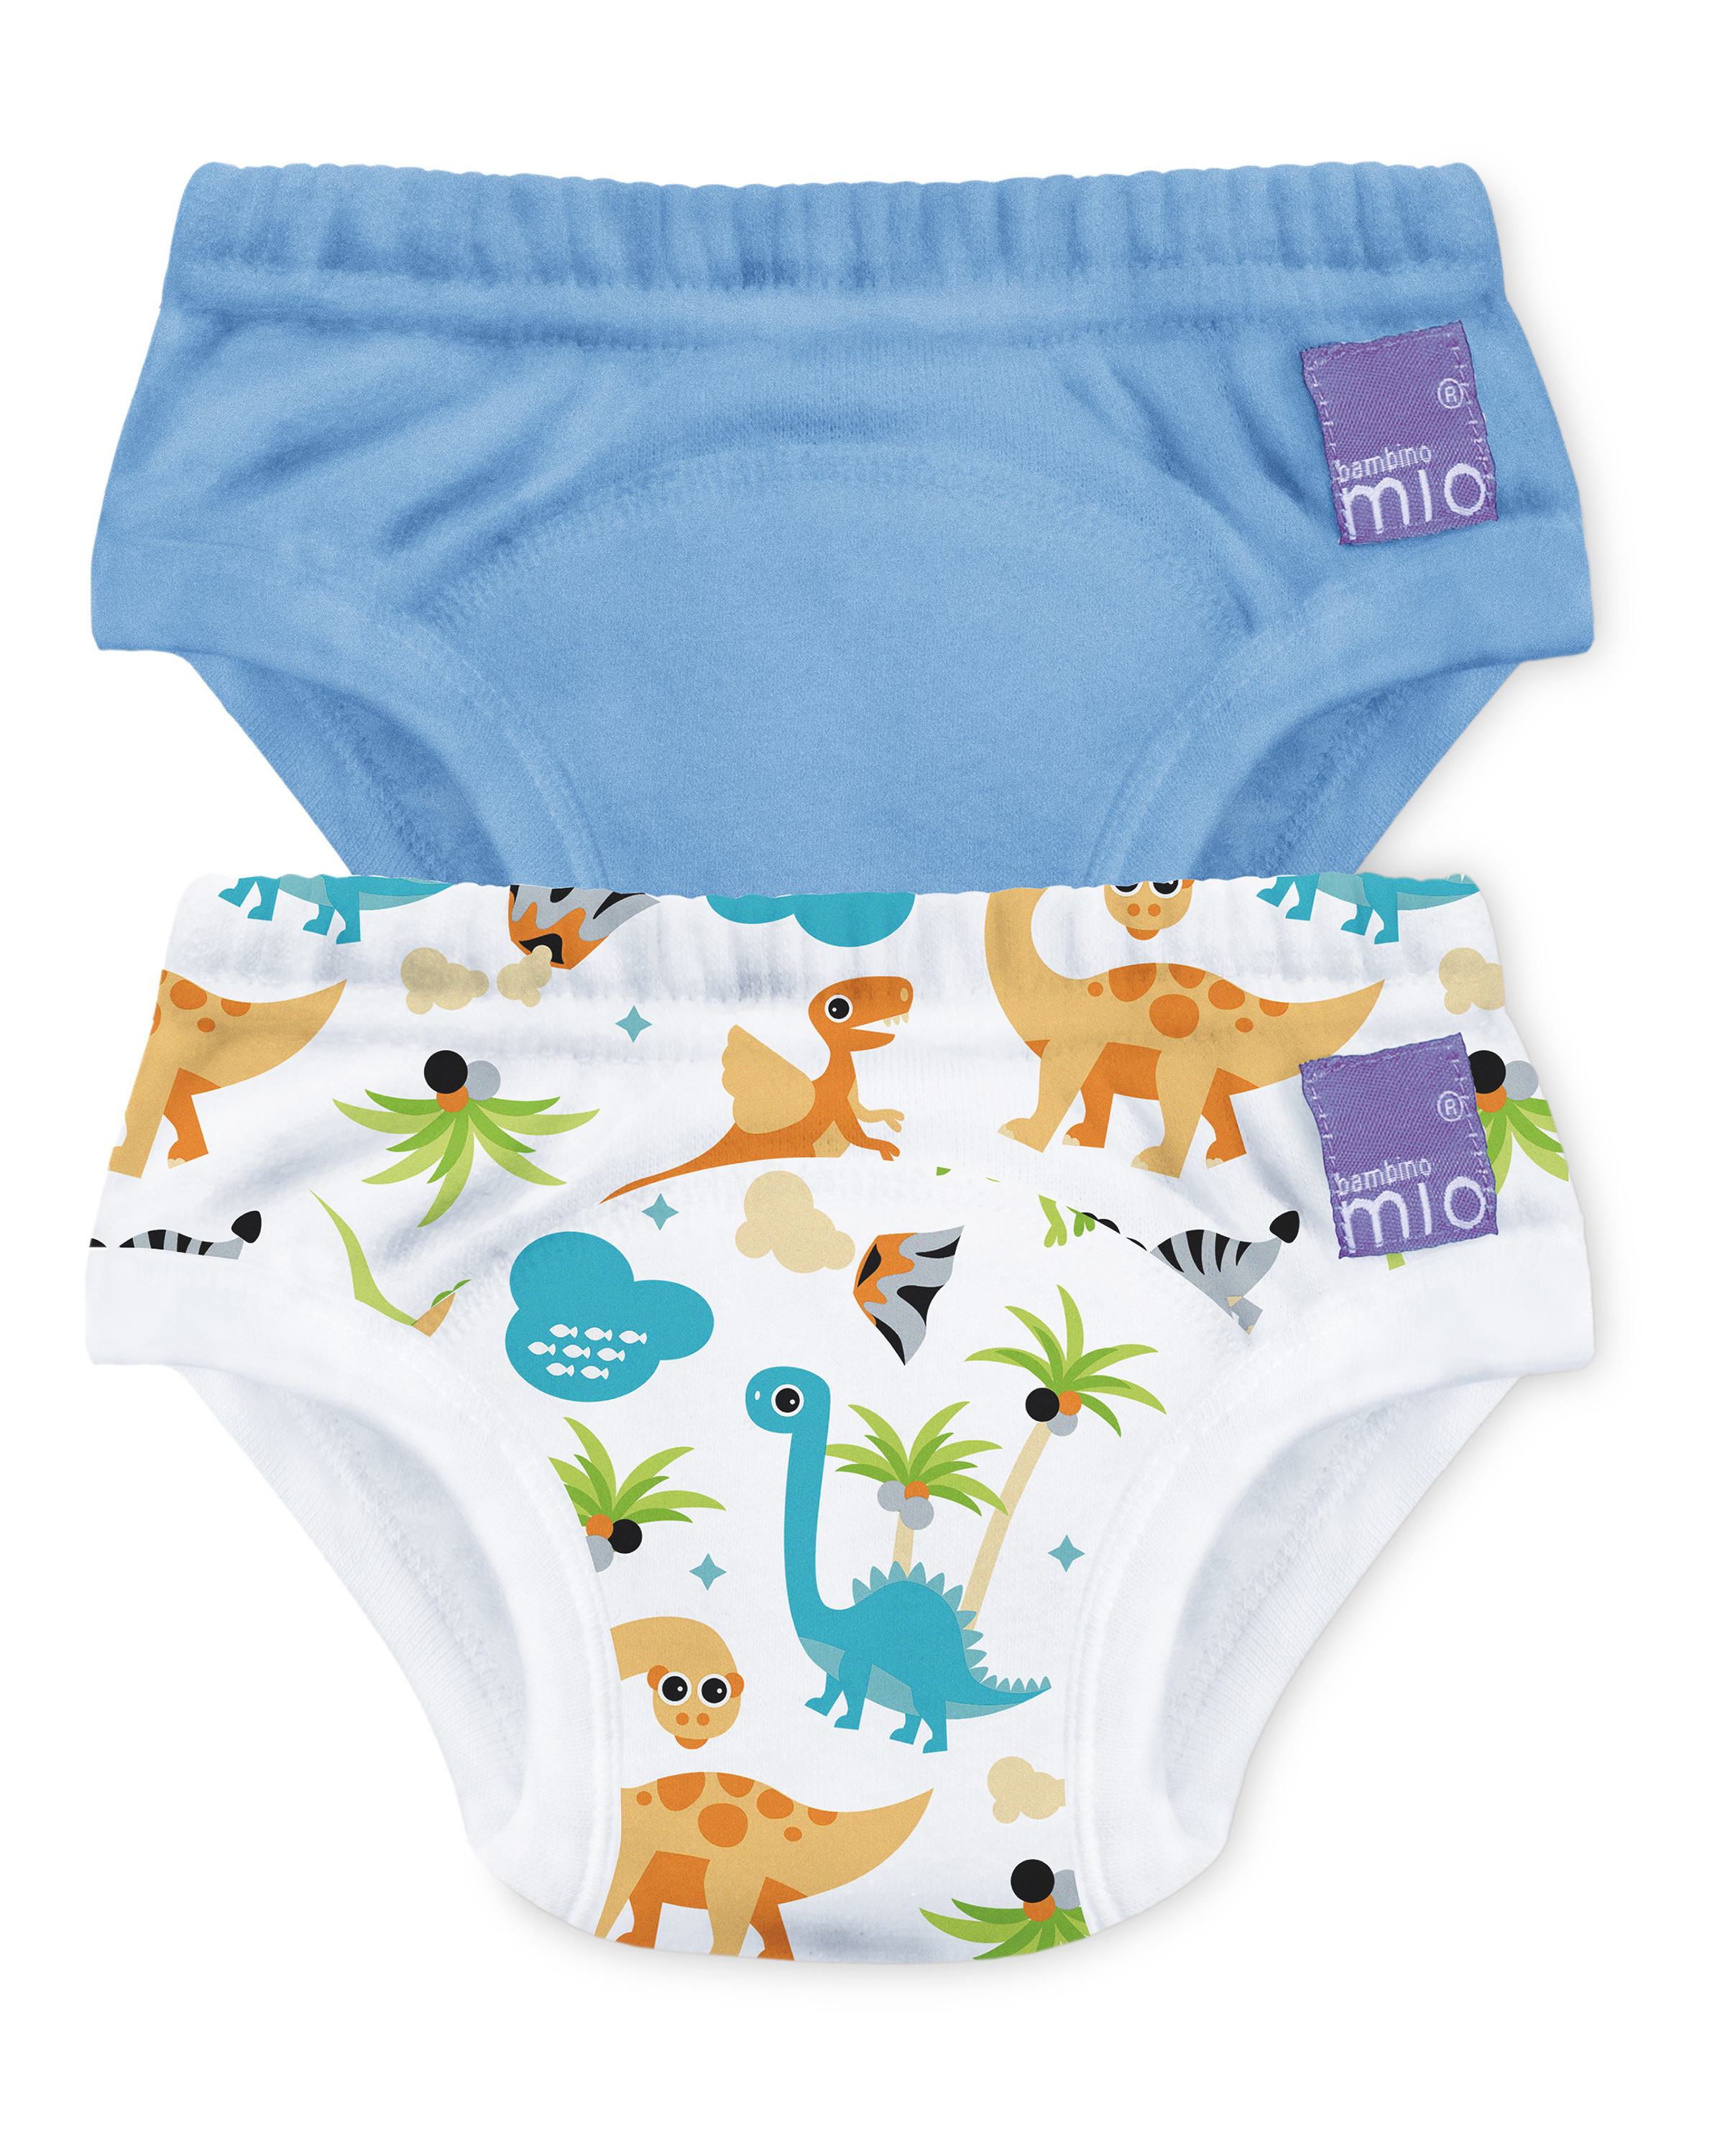 Dinosaur Potty Training Pants 2 Pack